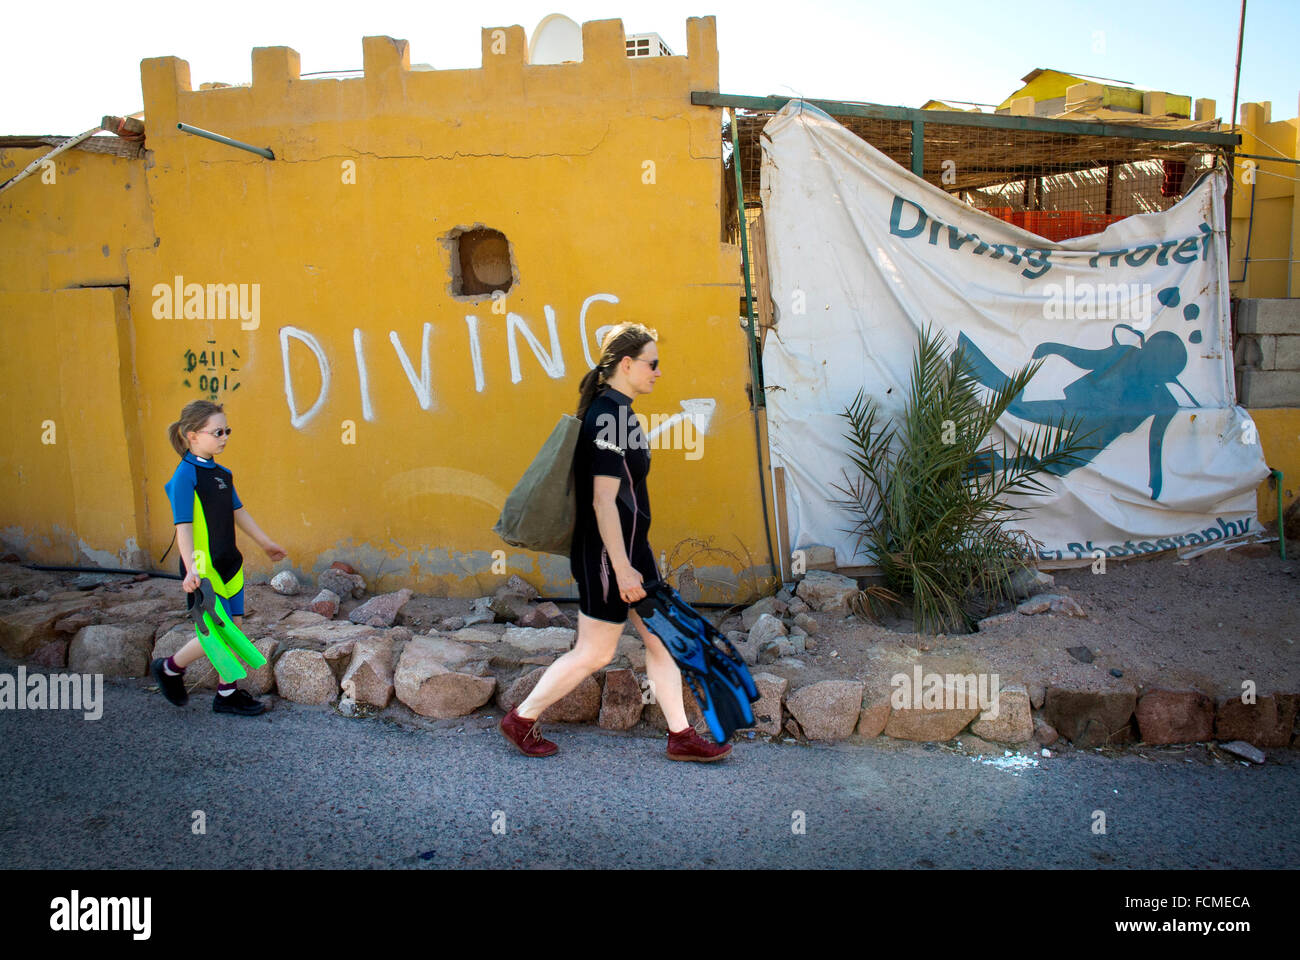 On their way to the Red Sea for Snorkeling at Aqaba, Jordan. - Stock Image